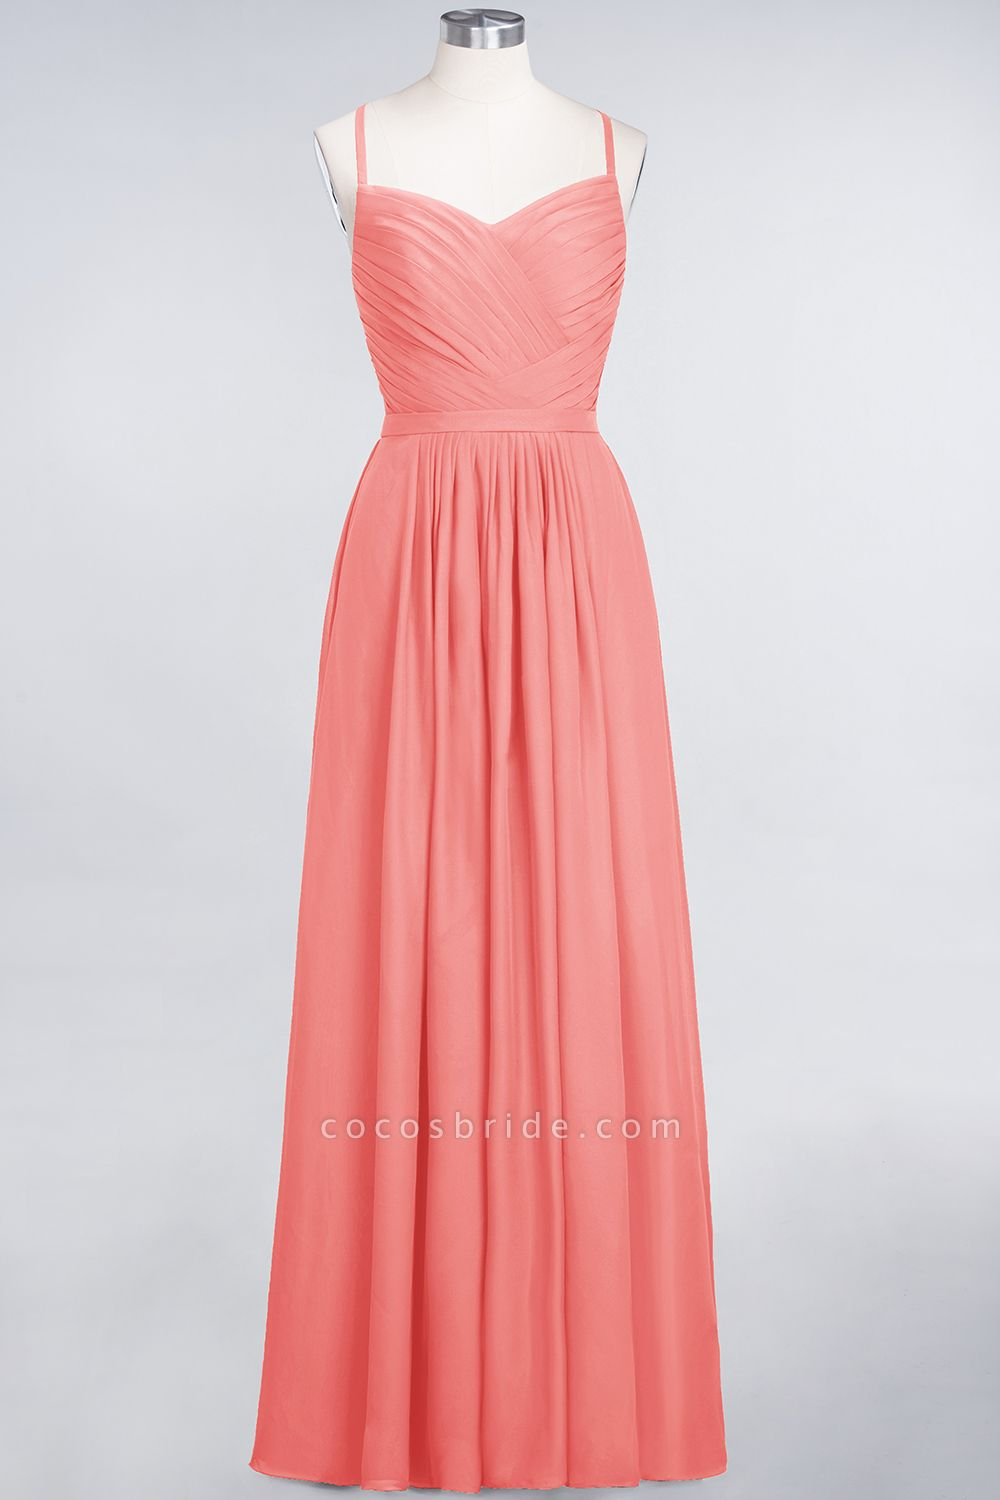 A-Line Chiffon Spaghetti-Straps Sweetheart Sleeveless Floor-Length Bridesmaid Dress with Ruffles